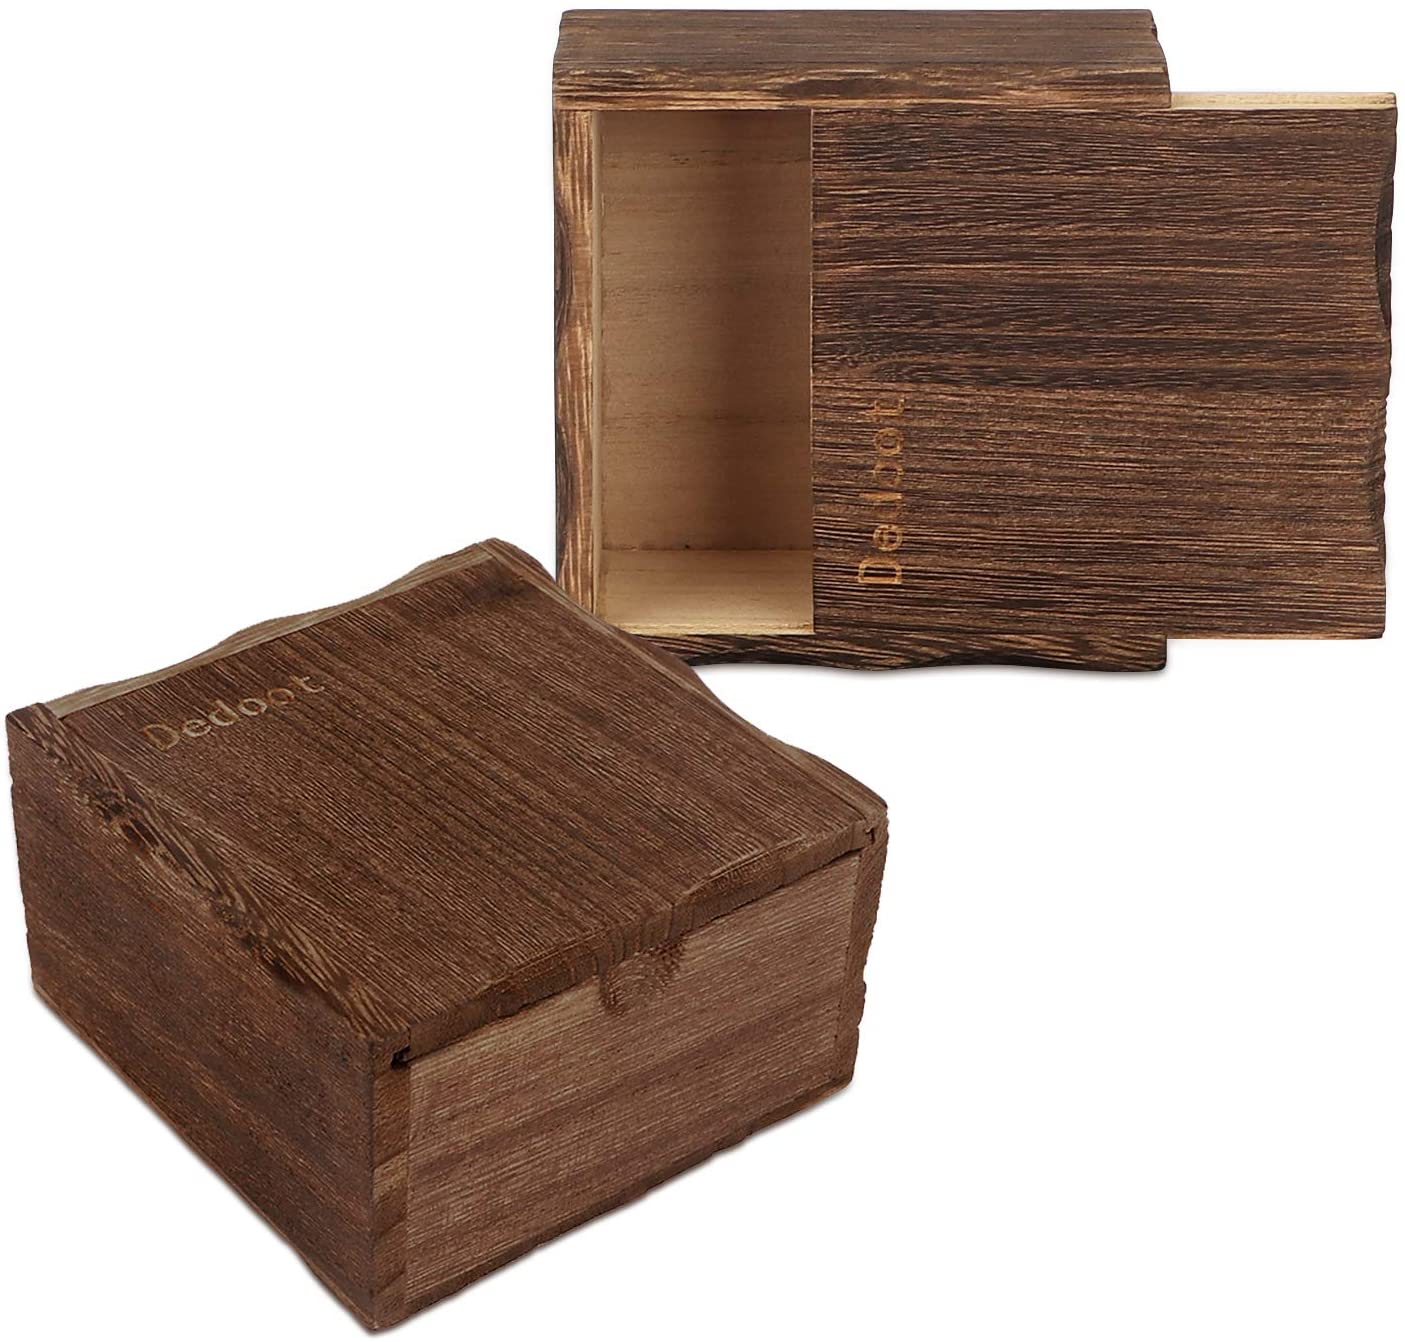 Wooden Box, Dedoot Pack of 2 Small Wooden Box Slide Top Decorative Box 4x4x2.4 Vintage Wooden Storage Box for Crafting Gift Jewelry Box